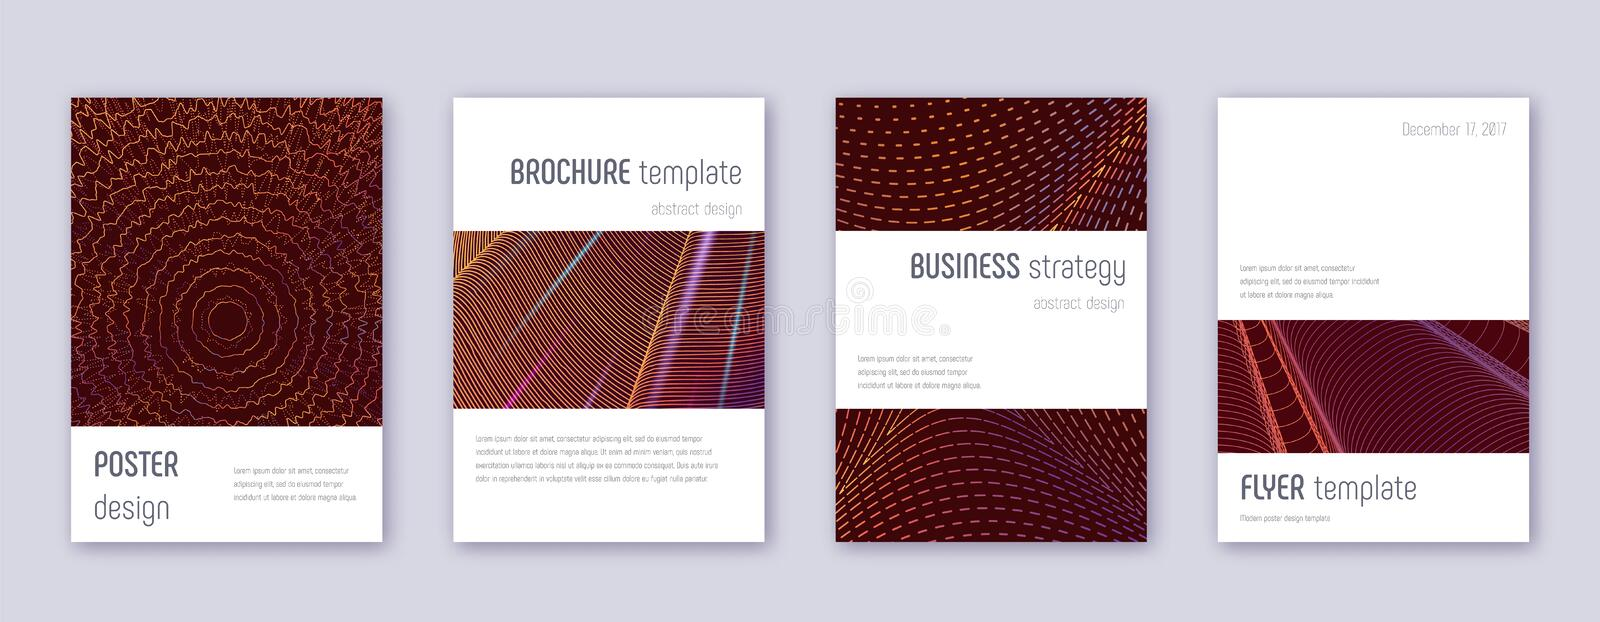 Minimalistic brochure design template set. Orange. Abstract lines on wine-red background. Attractive brochure design. Good-looking catalog, poster, book stock illustration